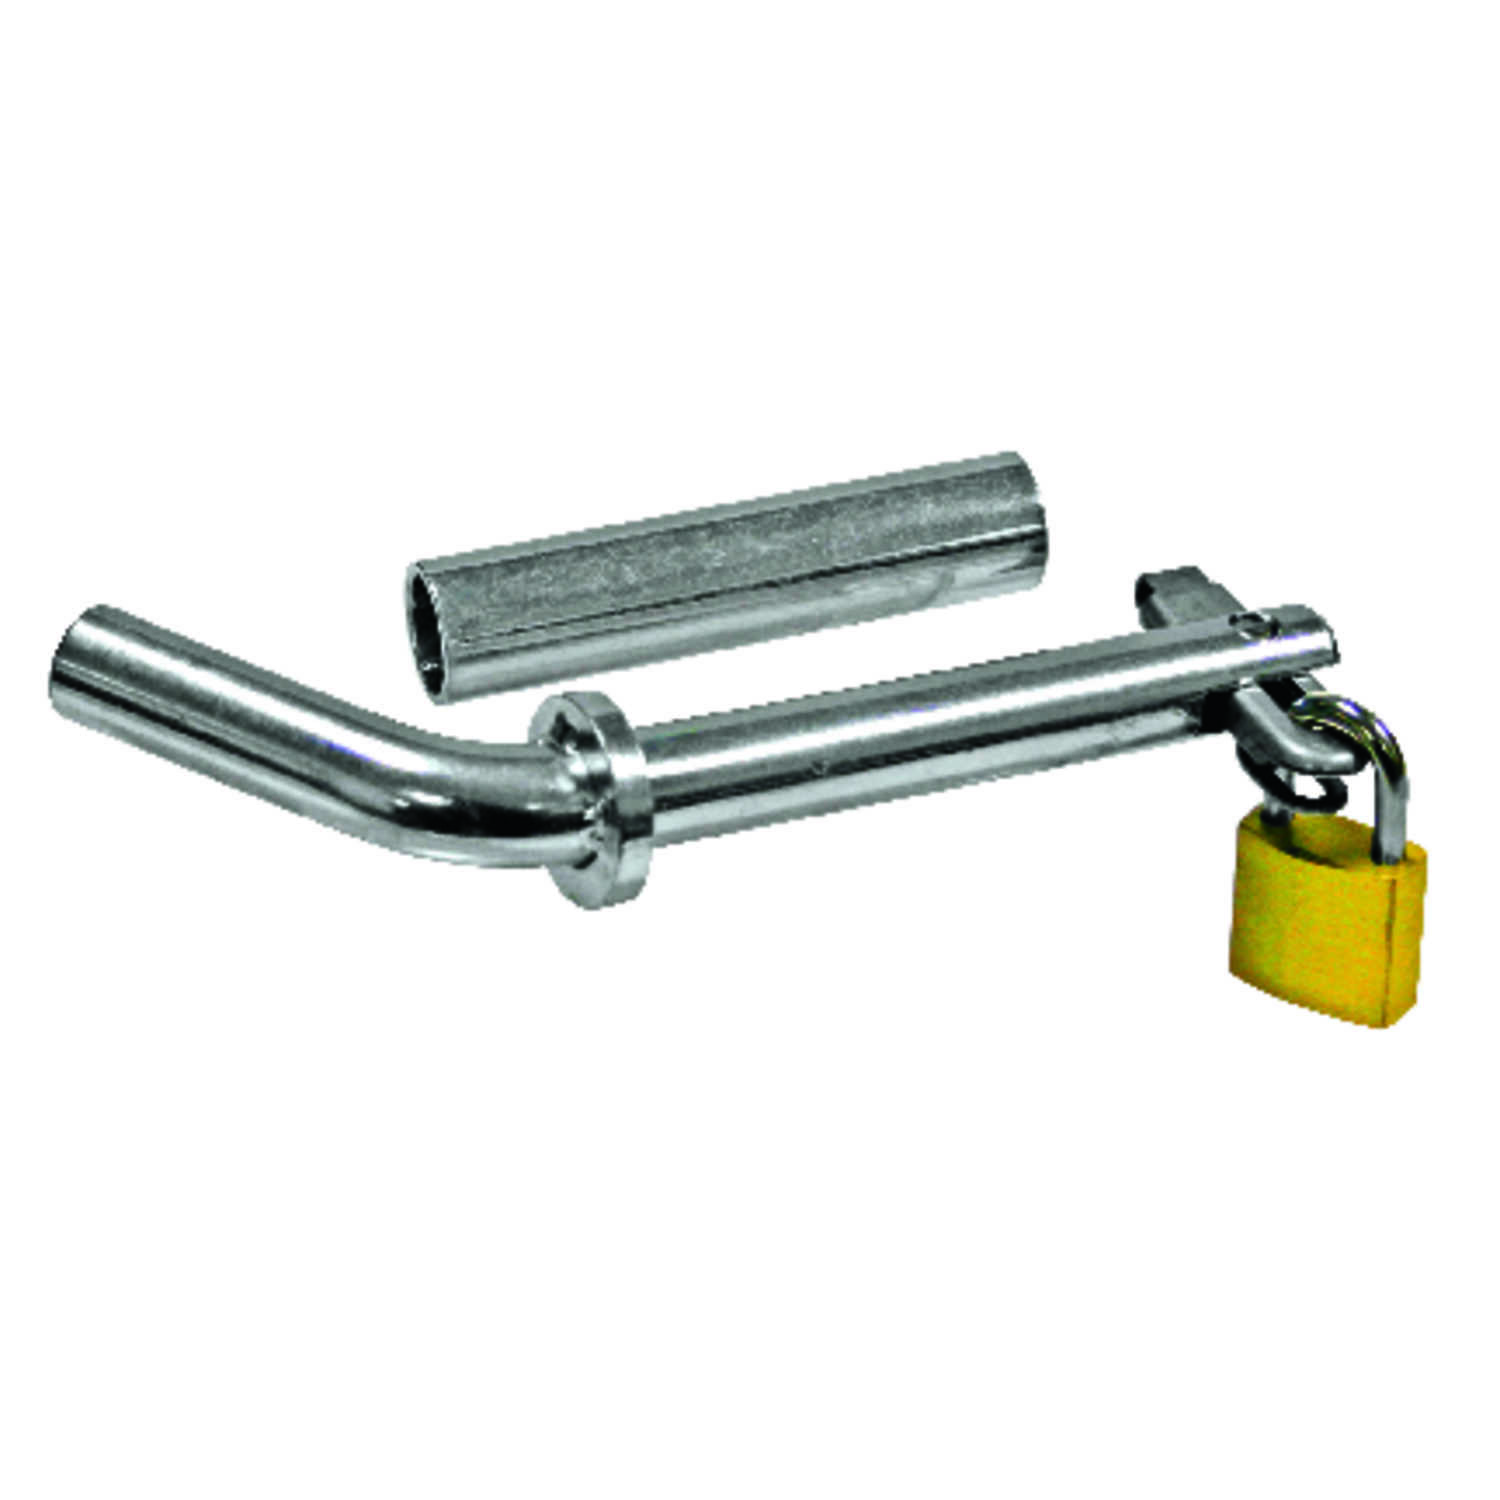 Reese  Towpower  Brass  Locking  1/2 - 5/8 in. Receiver and Coupler Lock